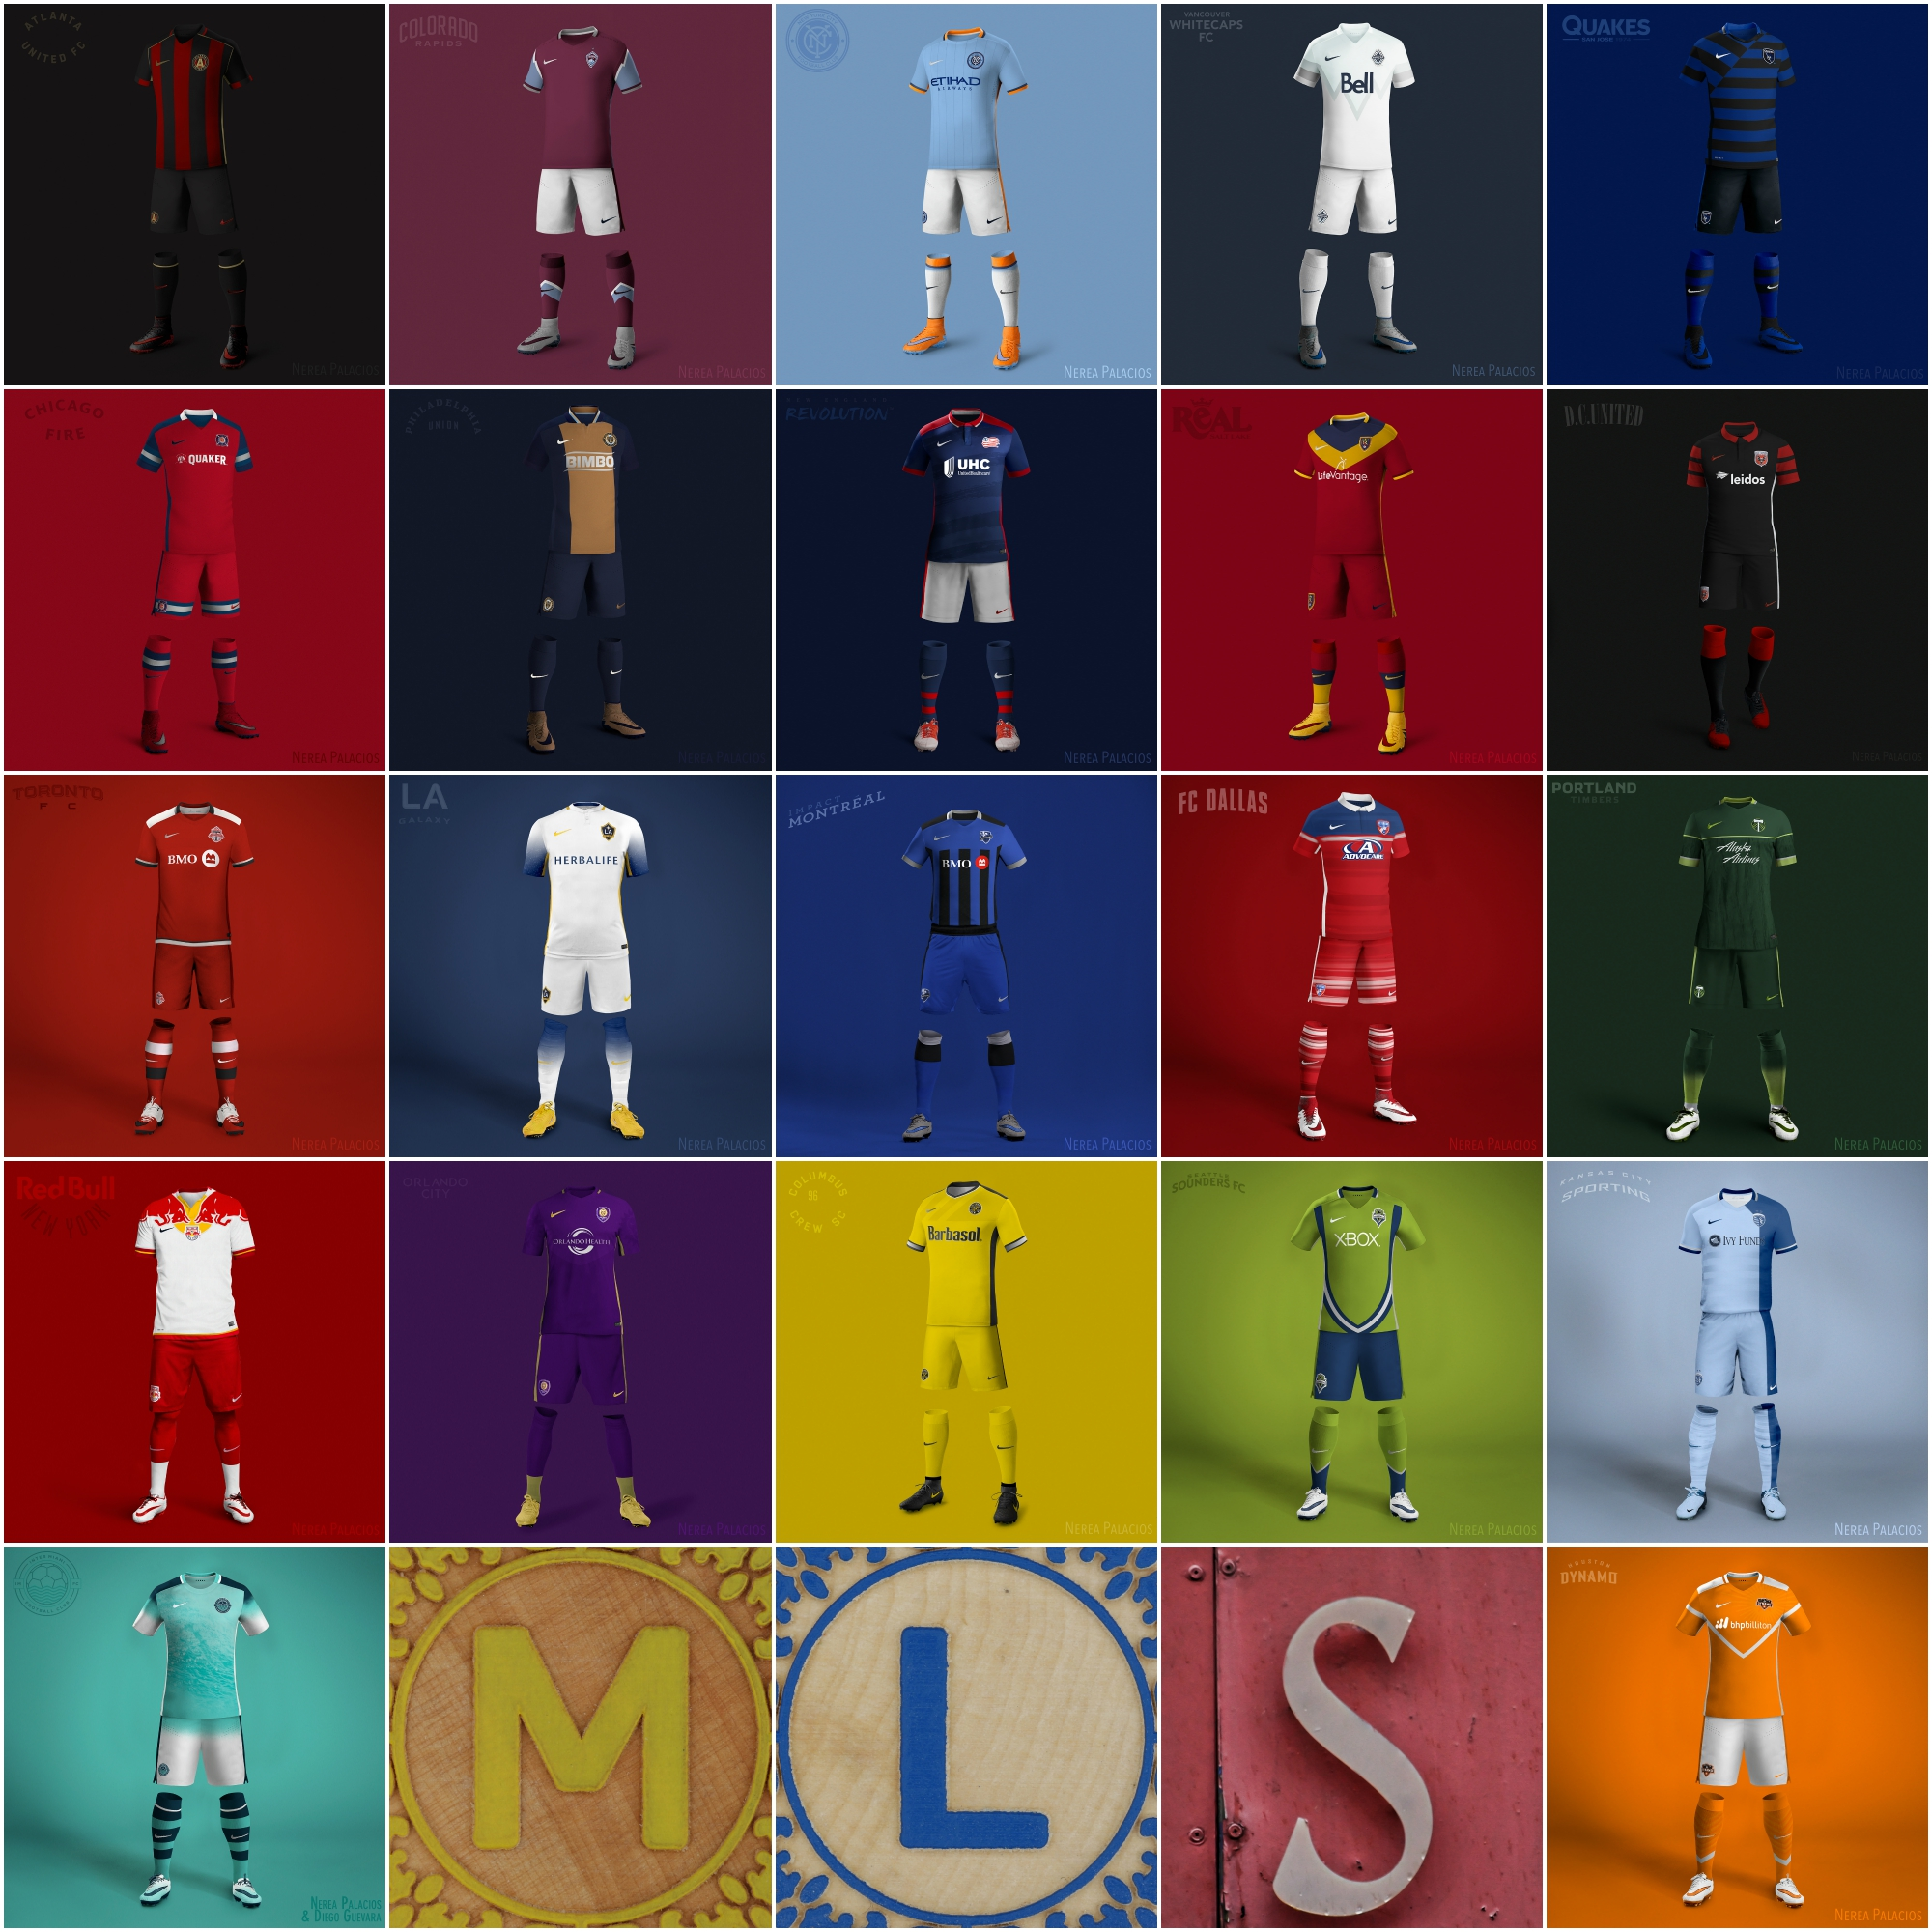 mls-collage